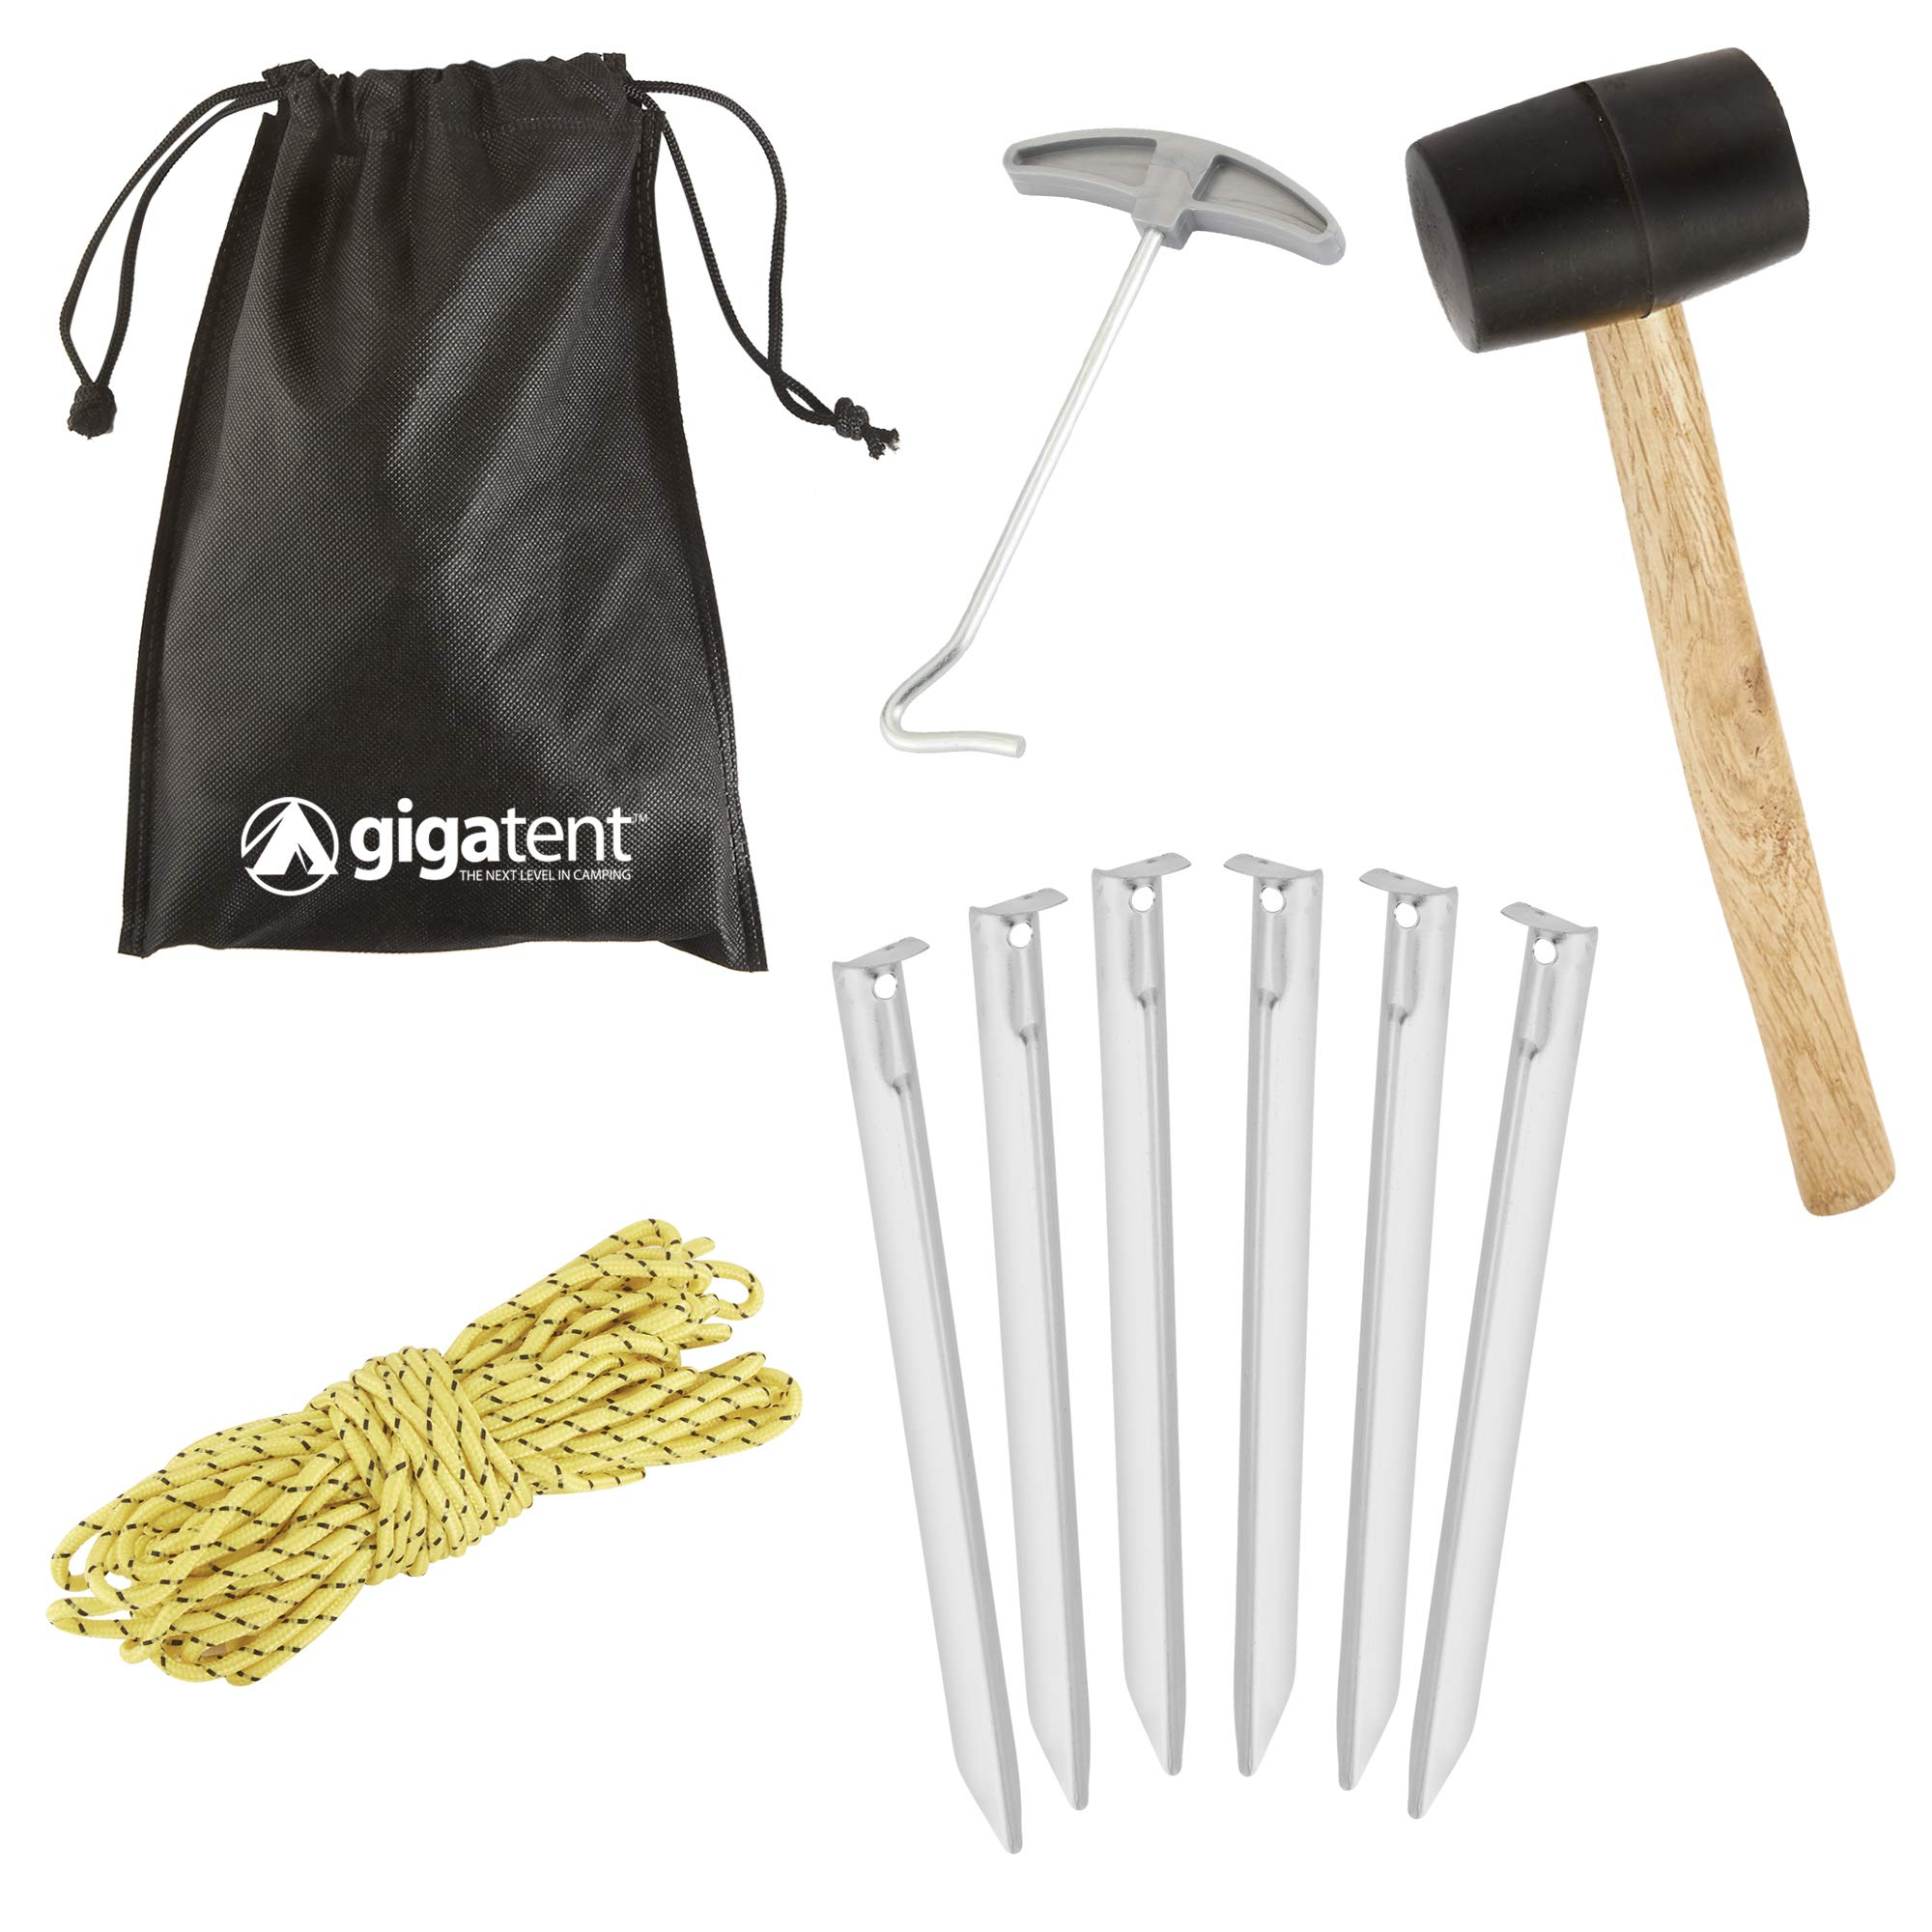 GigaTent 10-Piece Camping Stake Set - Complete Lightweight Tent Setup with Portable Bag - Essential Gear for Outdoor & Hiking by GigaTent